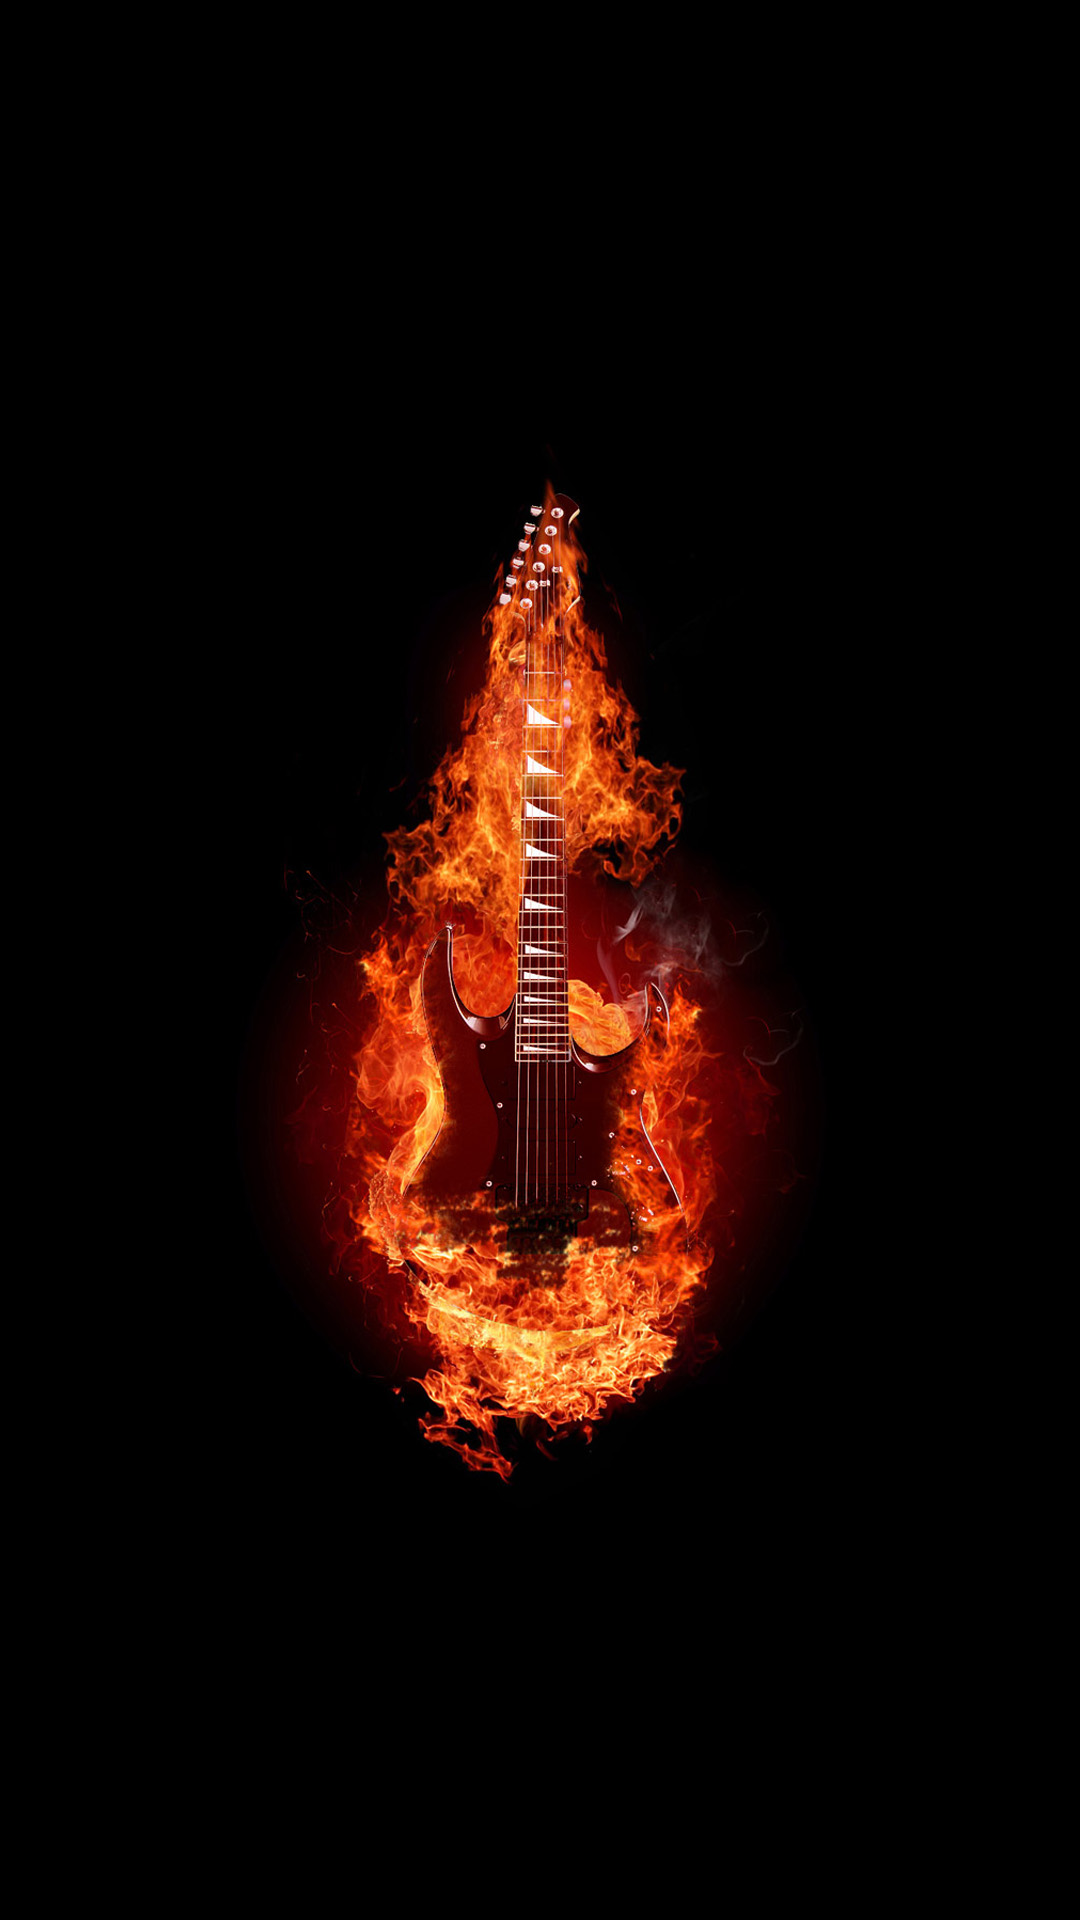 guitar on fire wallpapers - photo #16